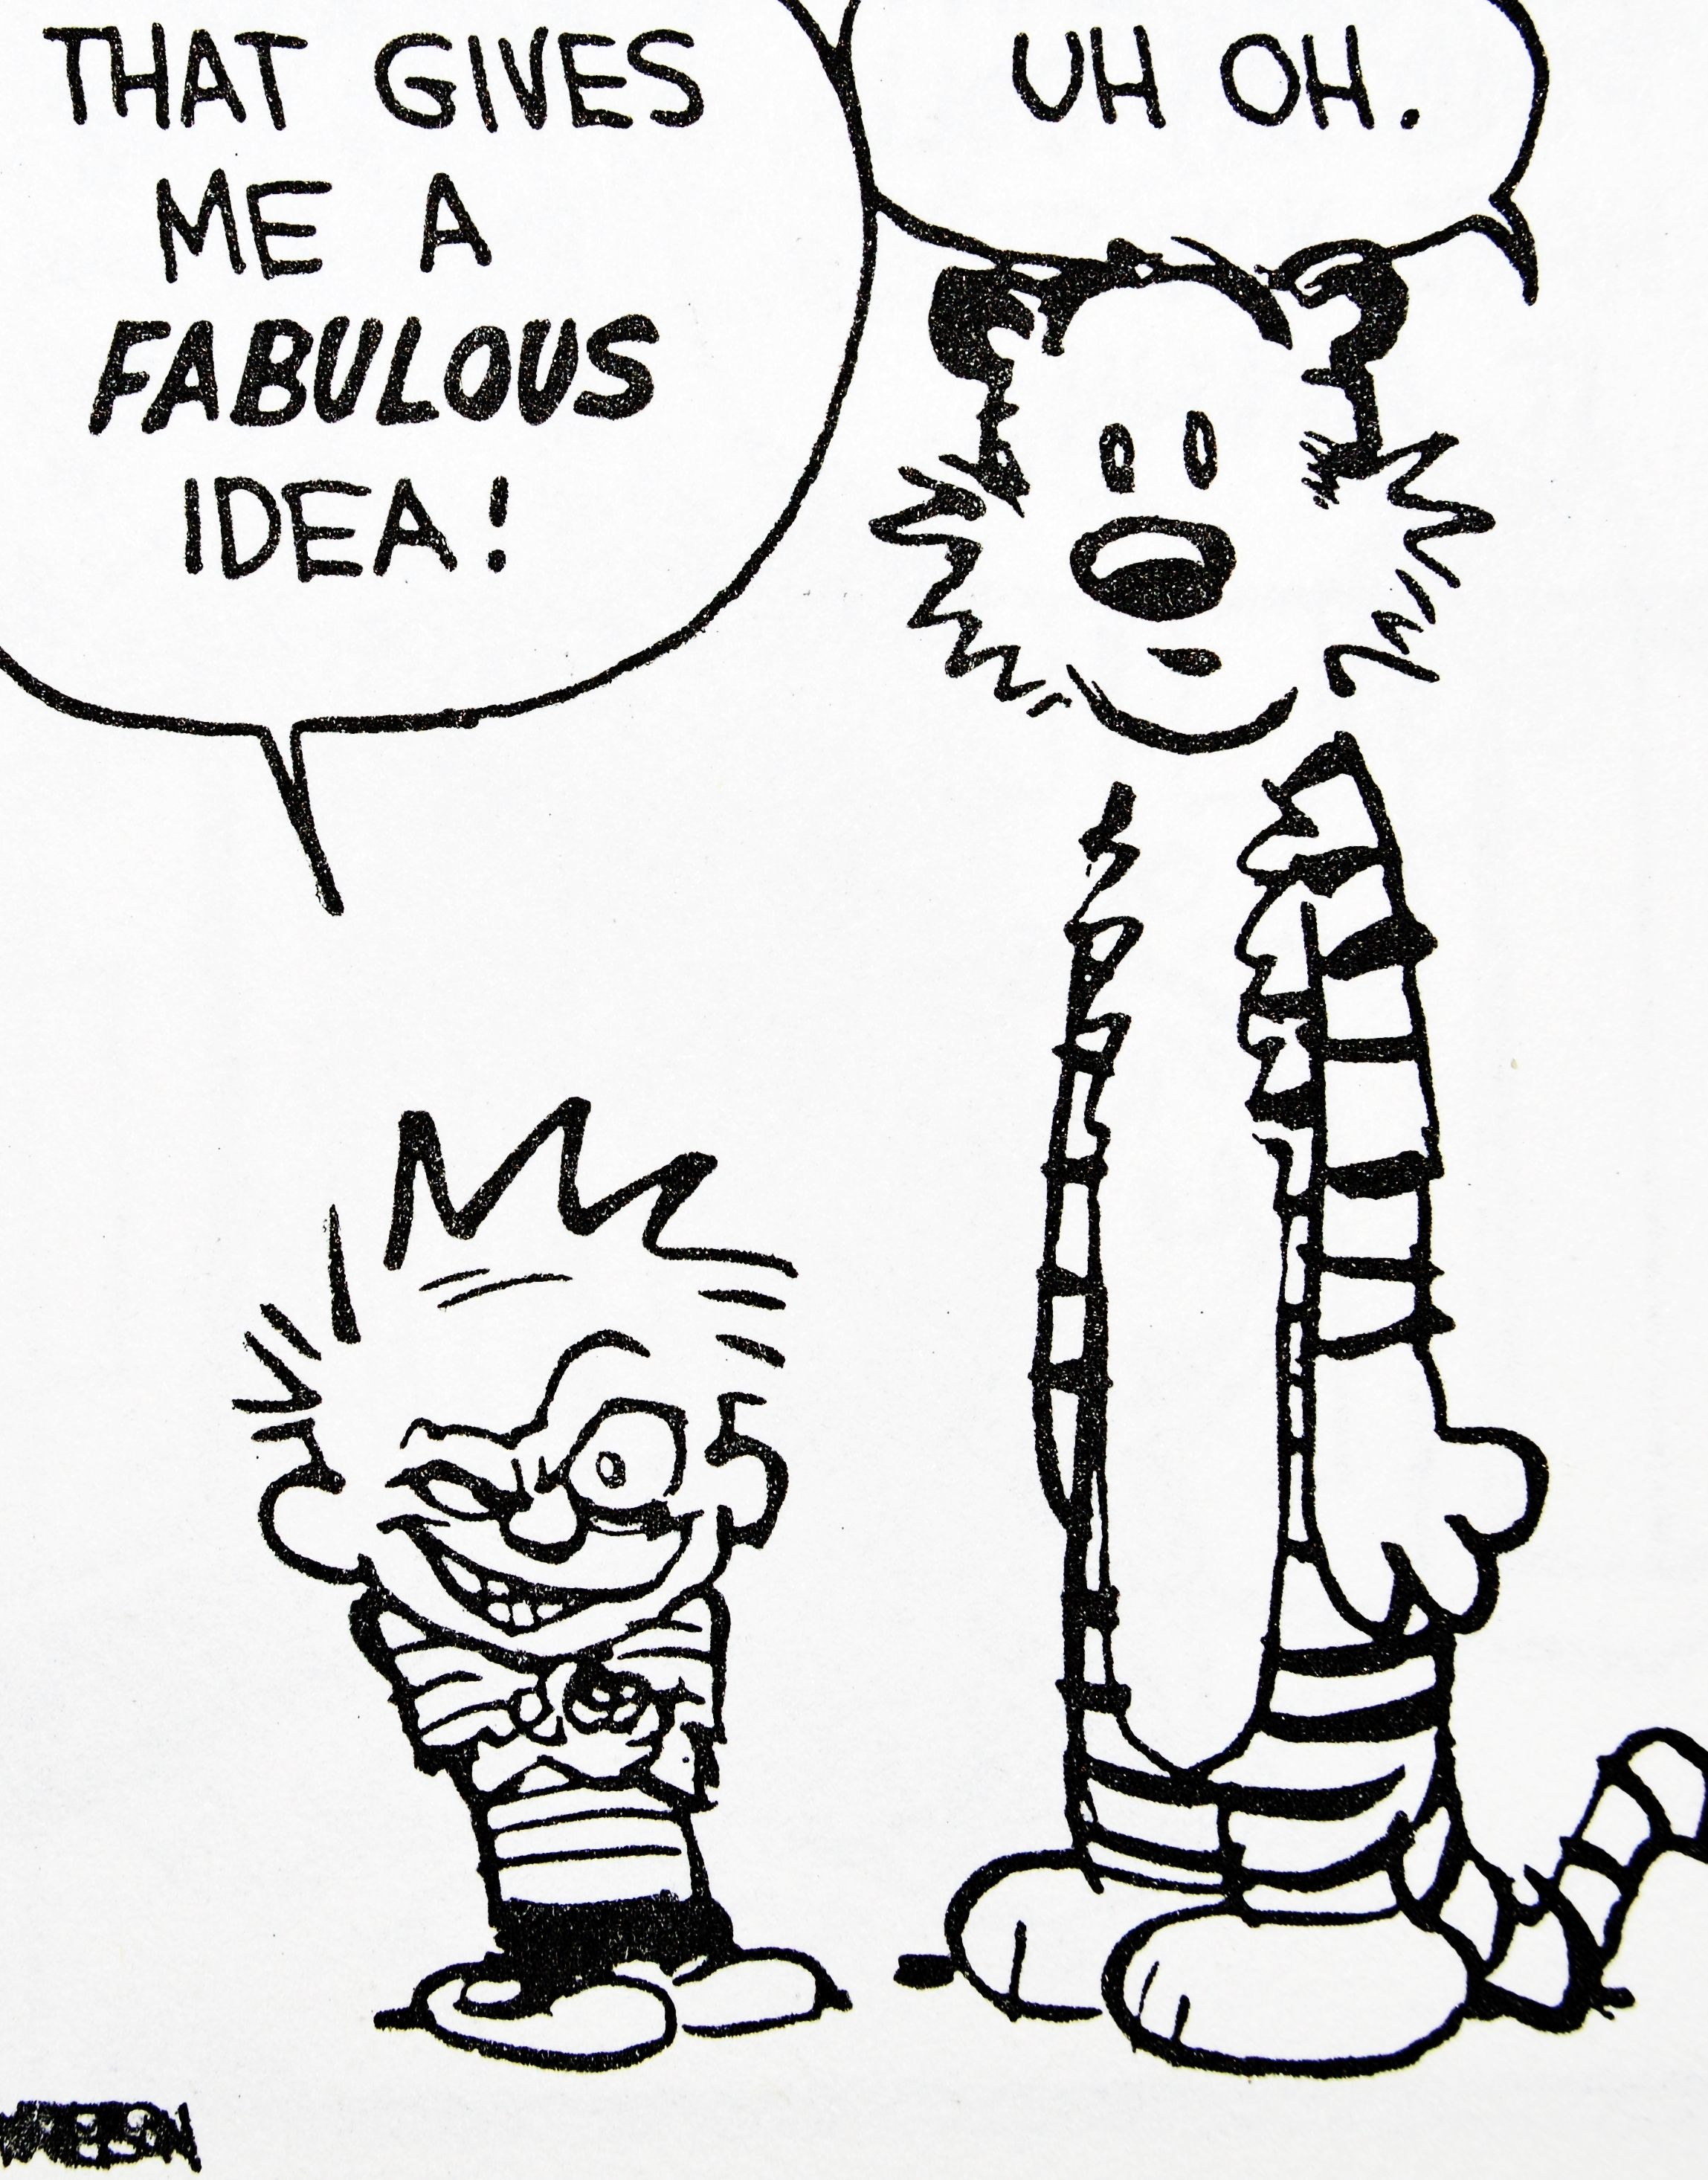 Calvin And Hobbes De S Classic Pick Of The Day 7 27 14 That Gives Me A Fabulous Idea Calvin And Hobbes Comics Calvin And Hobbes Calvin And Hobbes Quotes